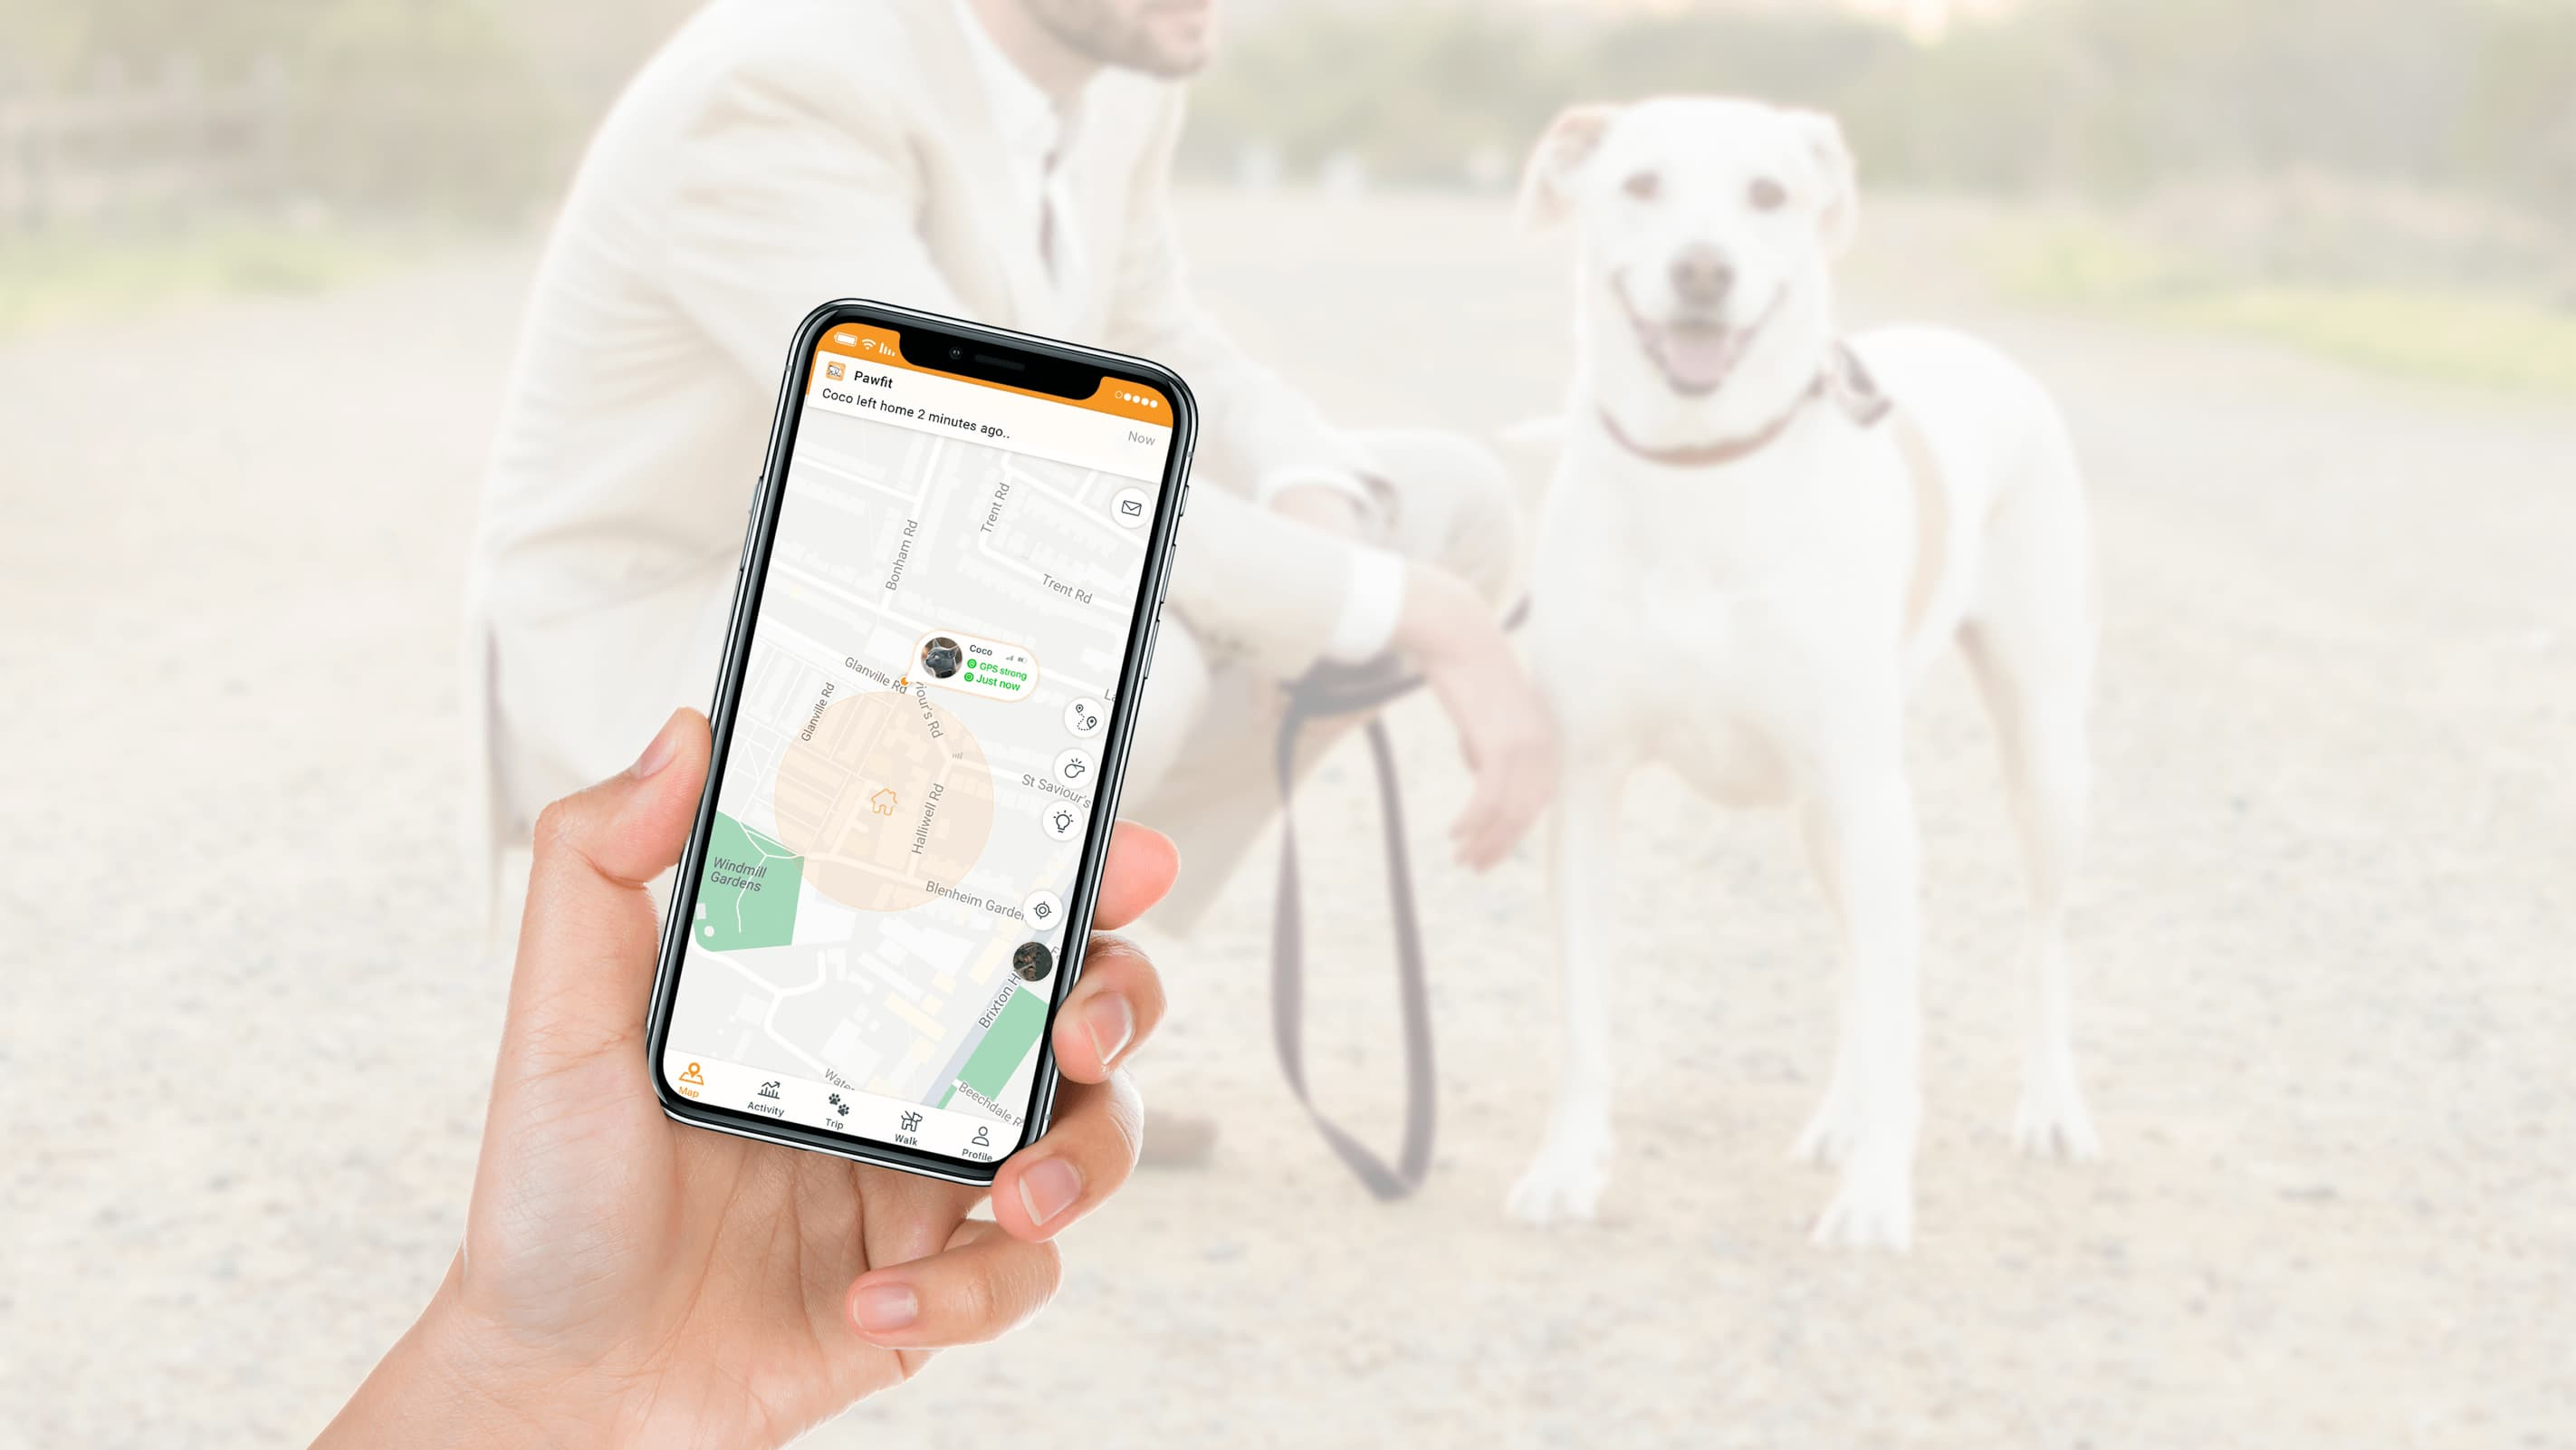 Pawfit App can be downloaded from App Store or Google Play